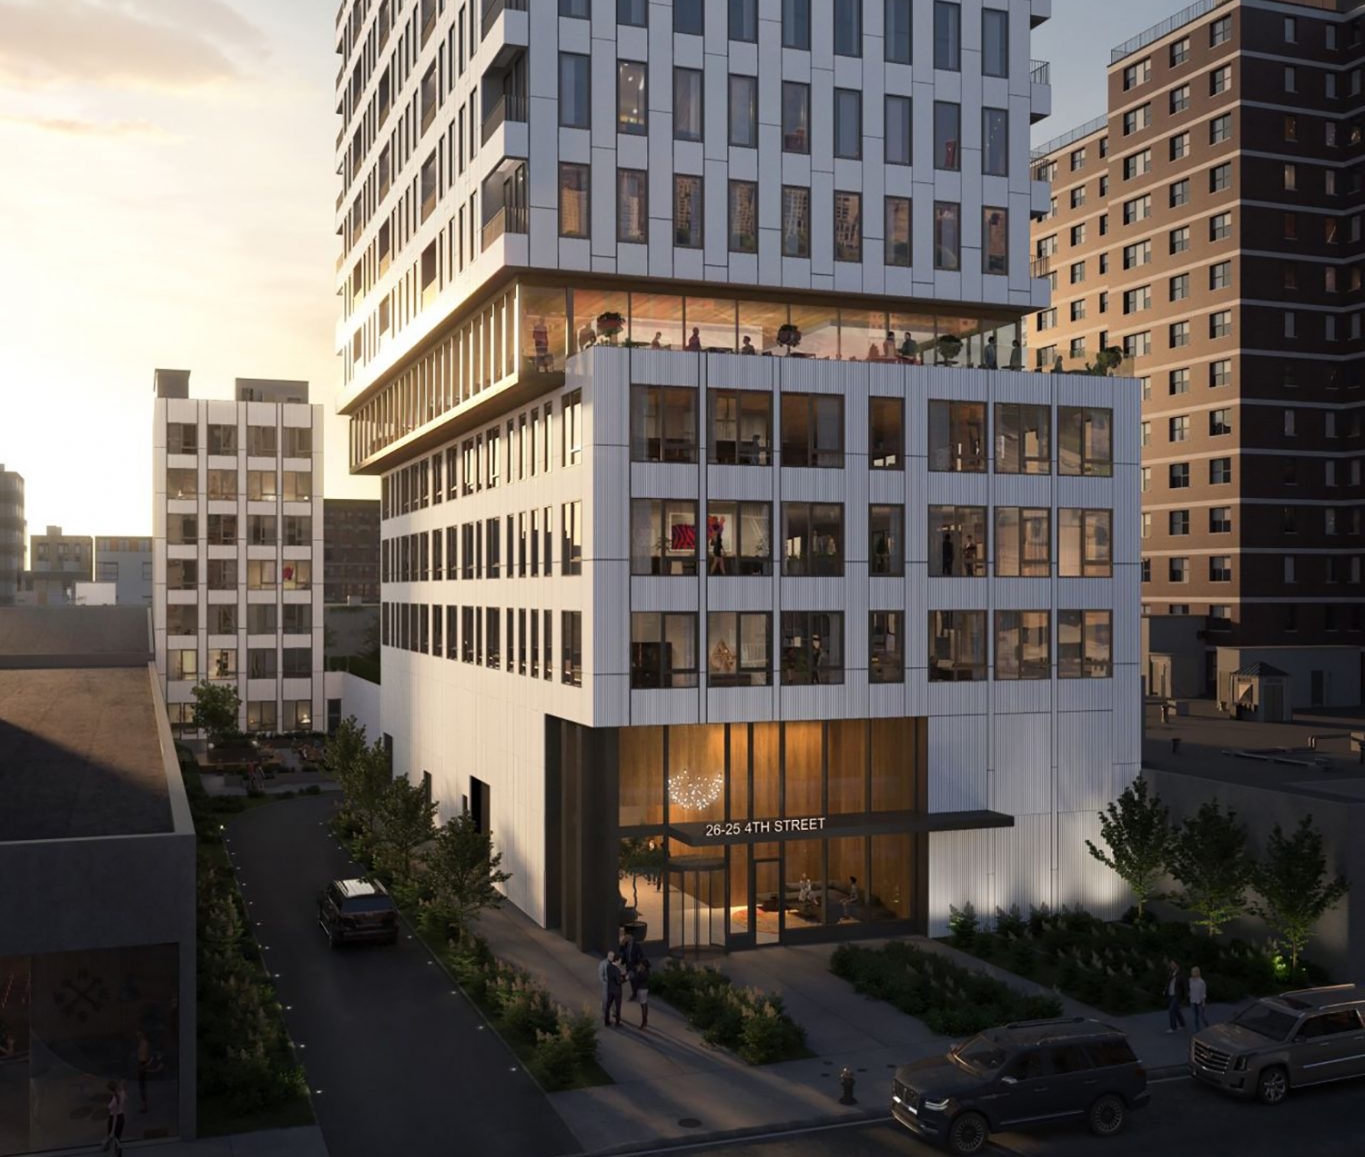 19-Story Building Coming To The Old Goodwill Location In Old Astoria